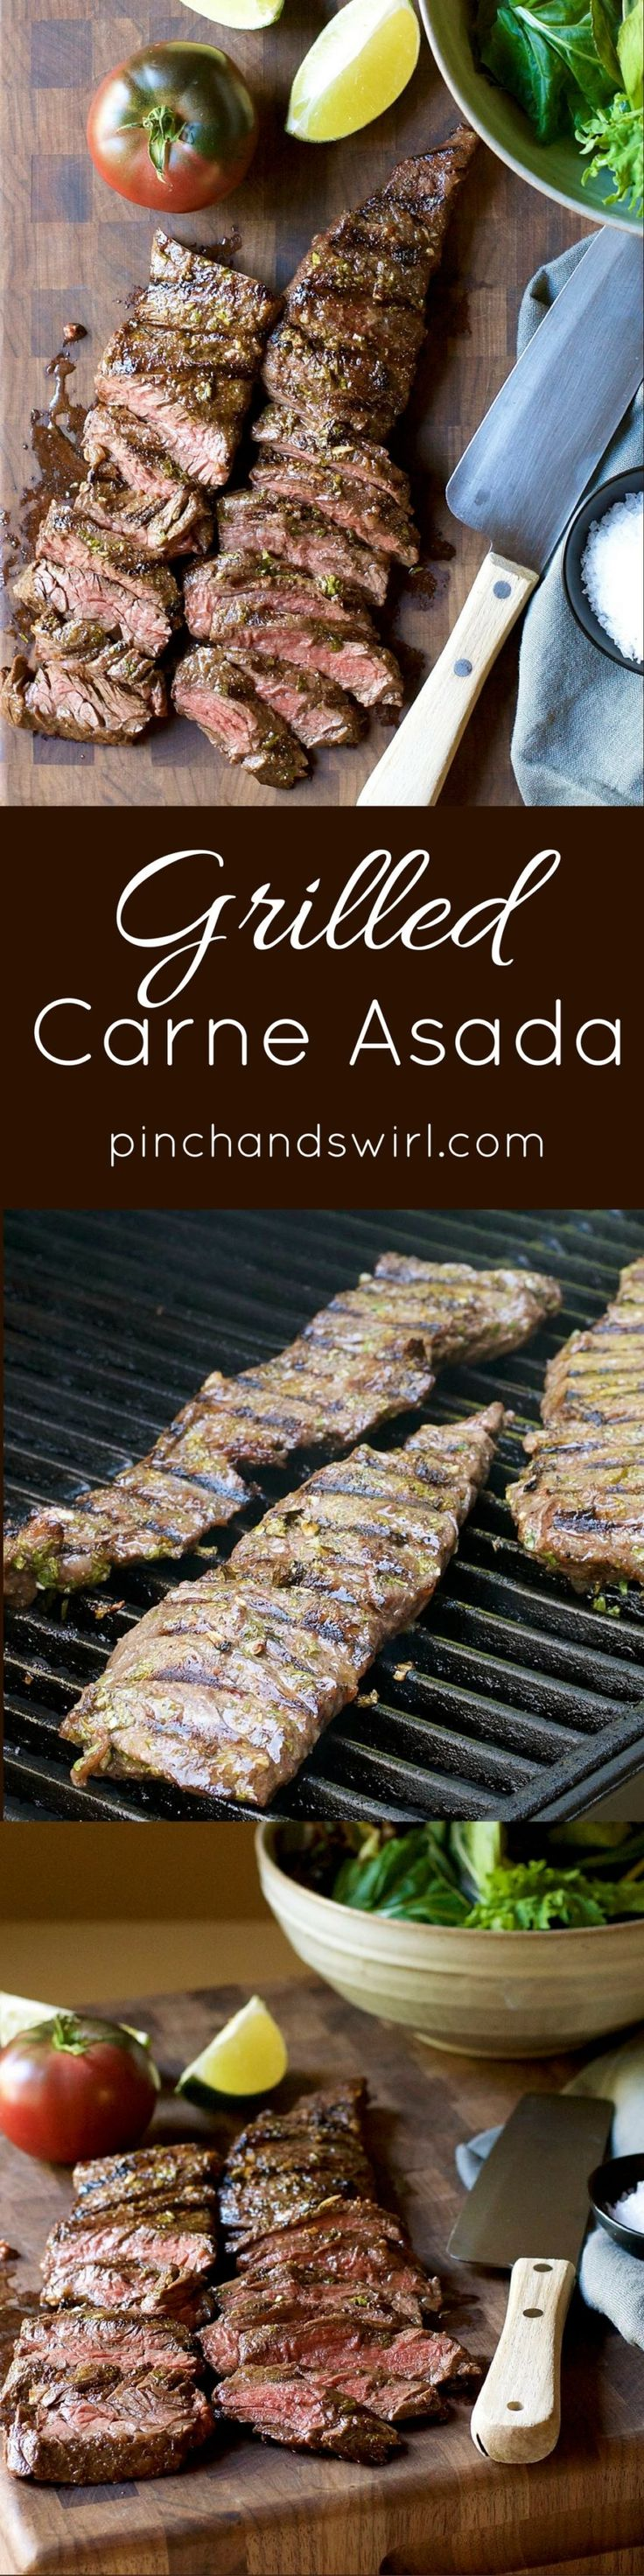 With a simple Carne Asada Marinade with fresh citrus juices and spices, you can make the most delicious Carne Asada recipes! Throw Carne Asada on the grill / BBQ and in less than 15 minutes you'll have dinner!